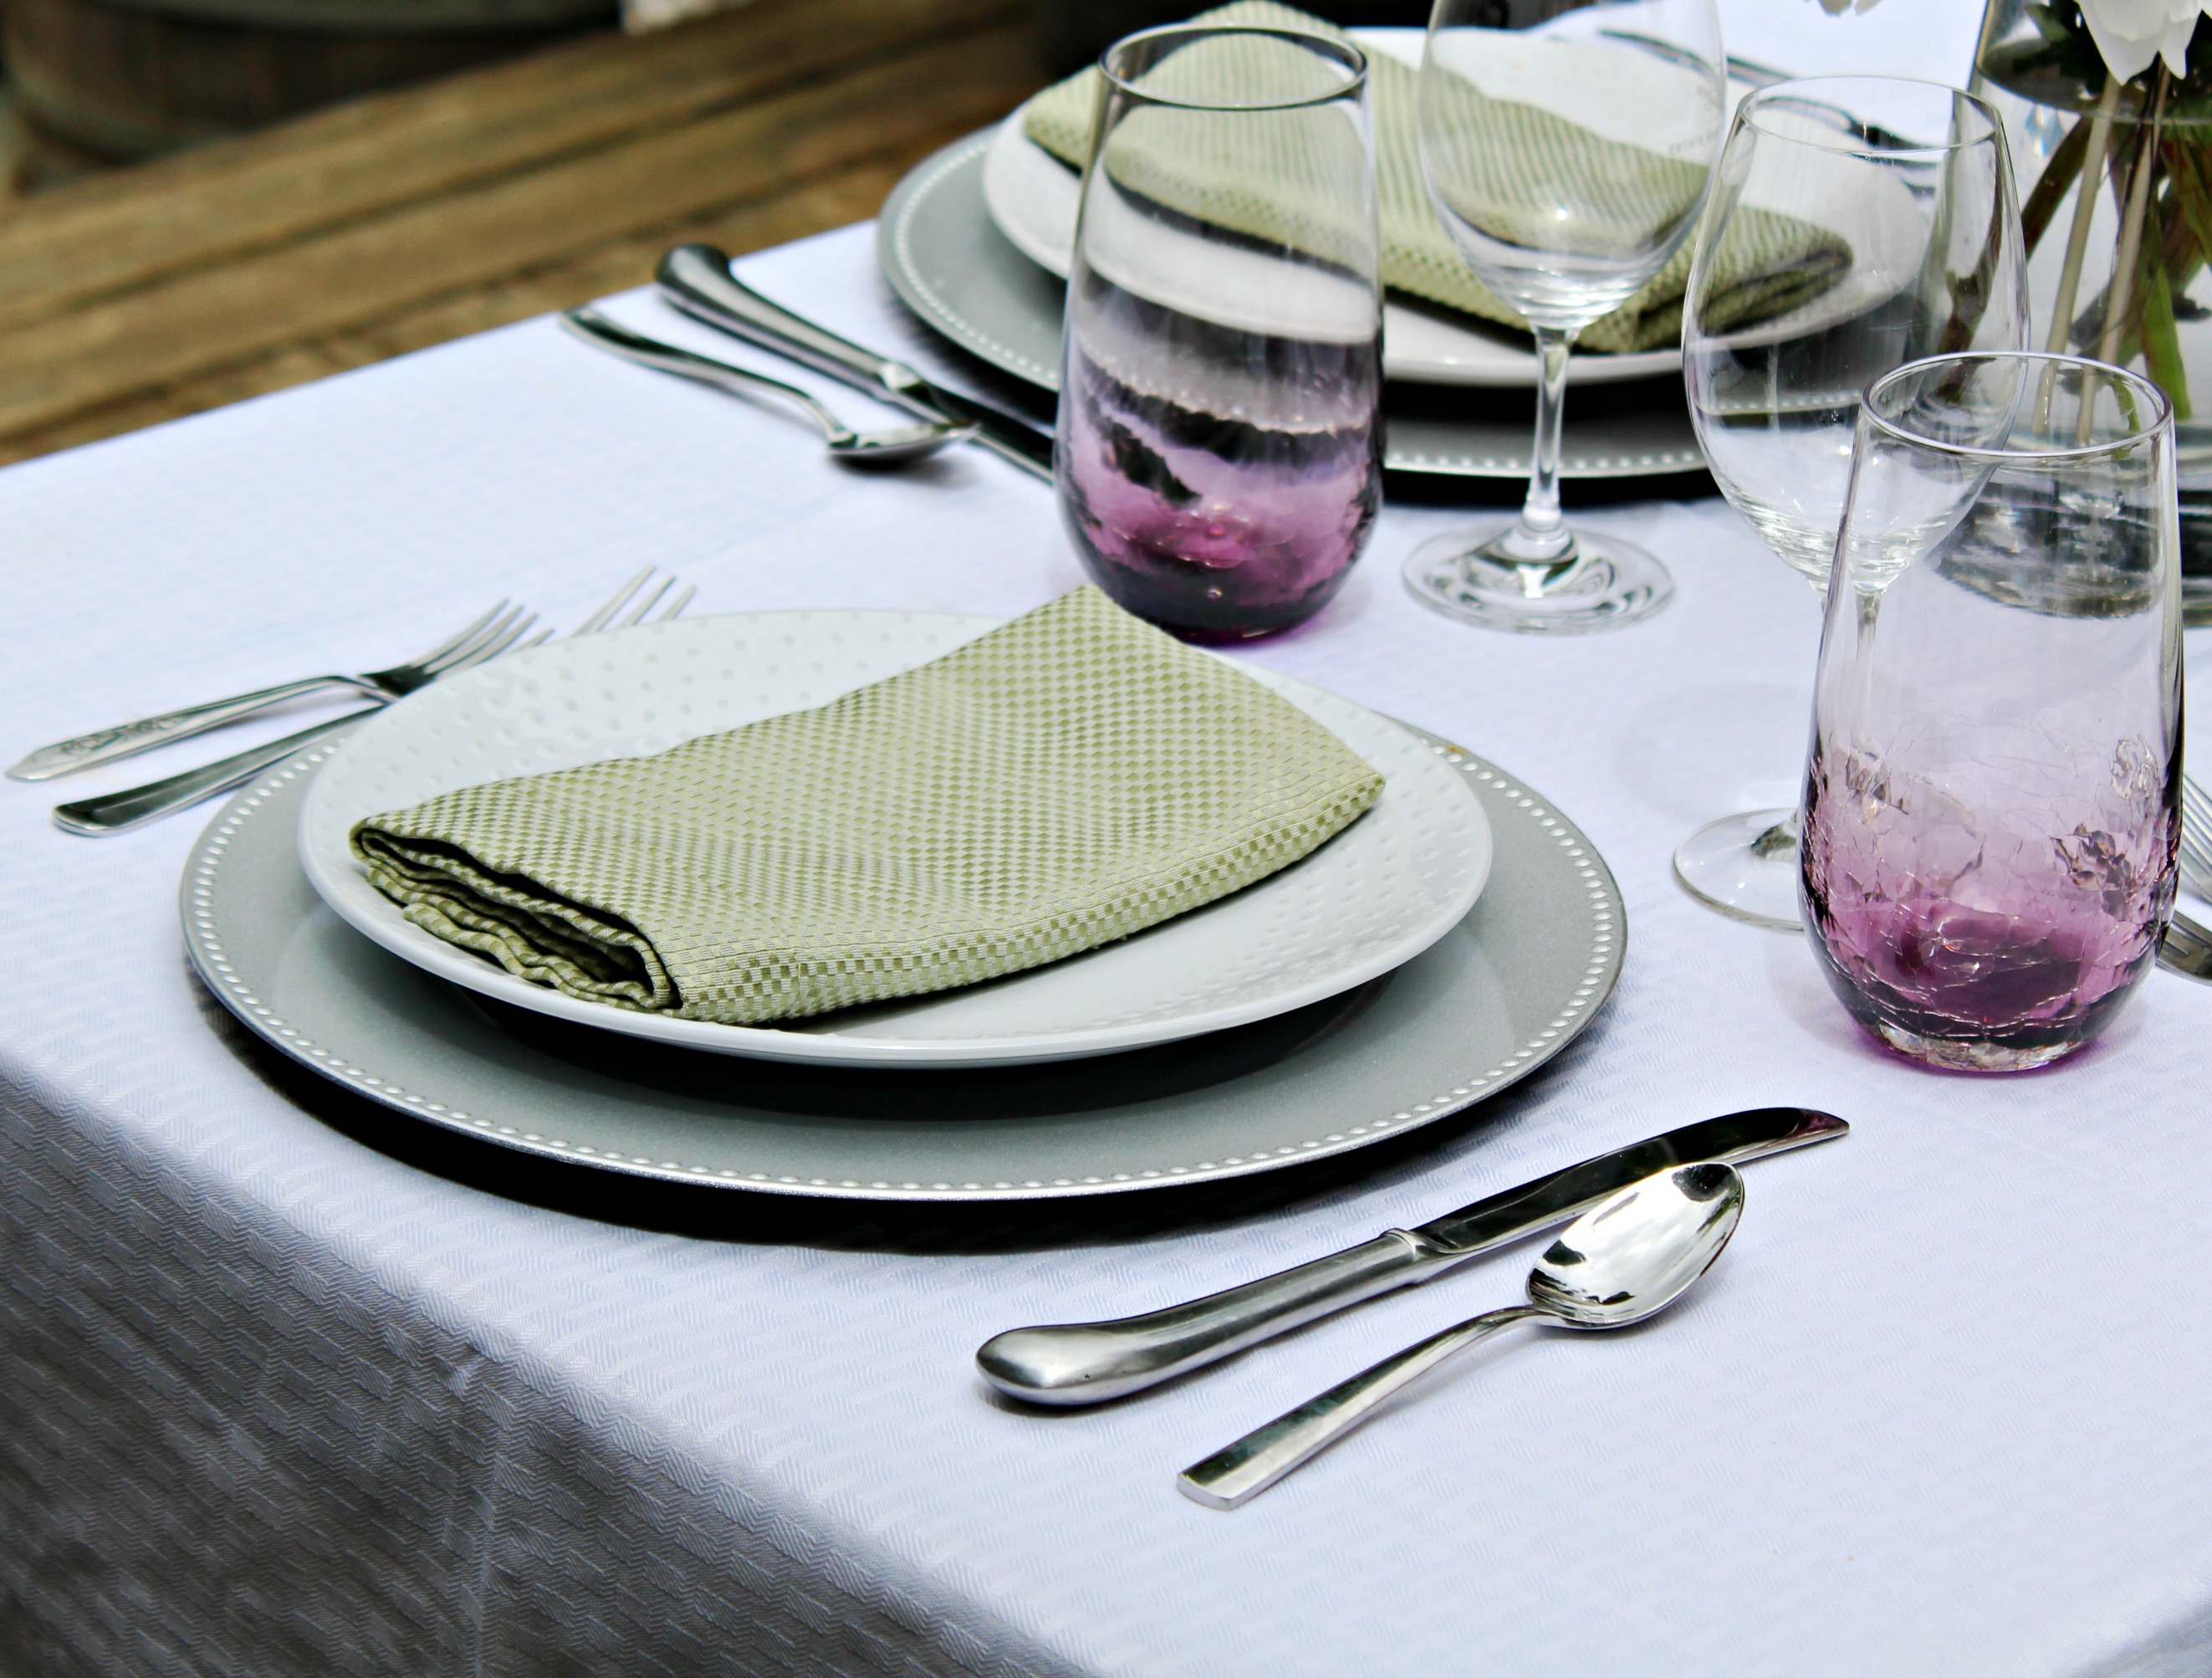 There are countless other tips to setting a nice dinner table but these should get you started! & How to Set a Nice Dinner Table - Melissa Kaylene